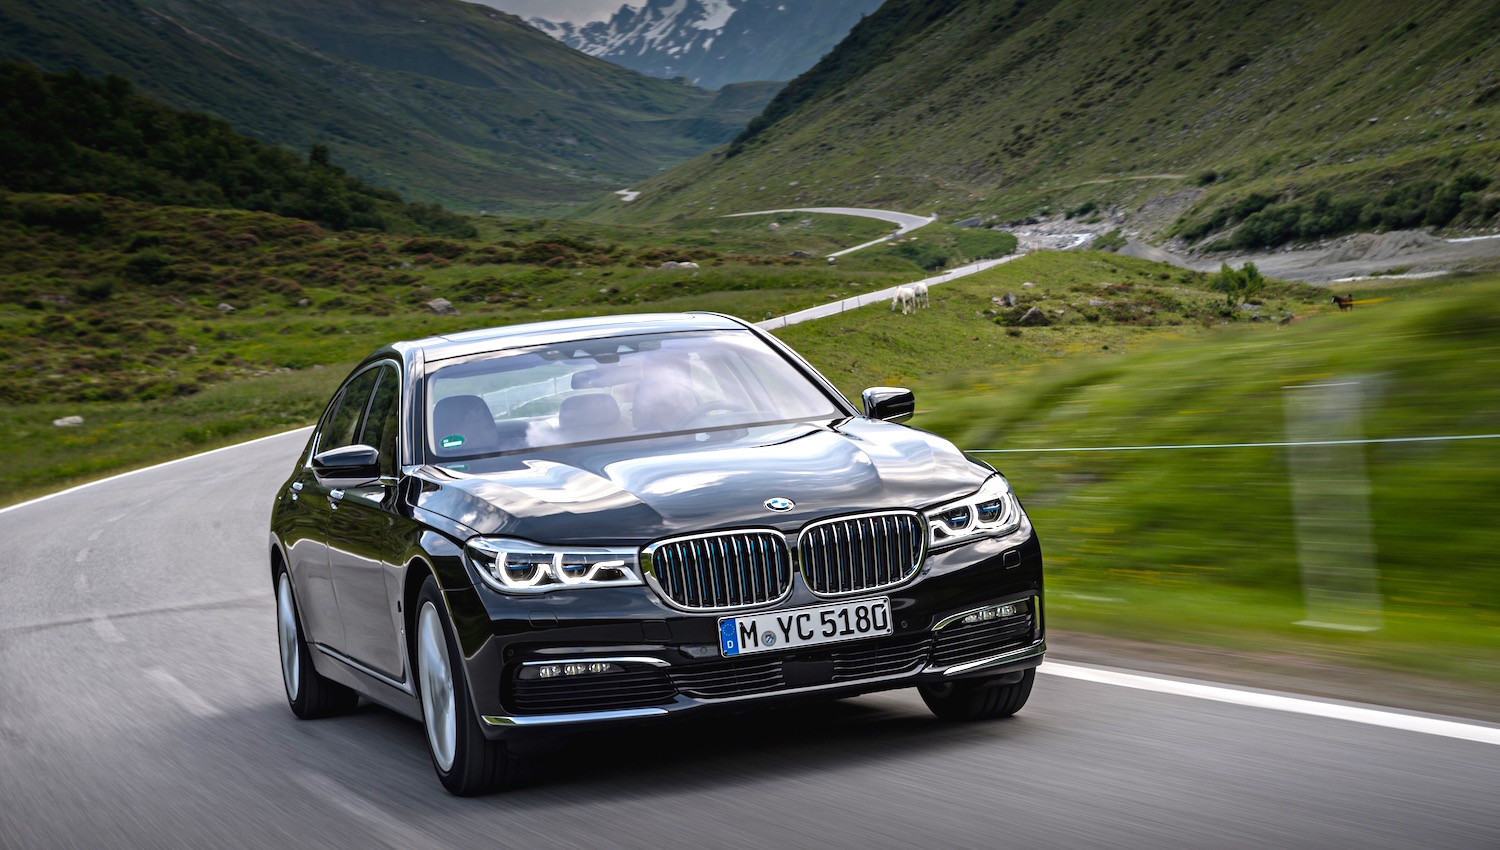 Bmw 7 Series Plug In Hybrids On Sale In Uk Greencarguidecouk